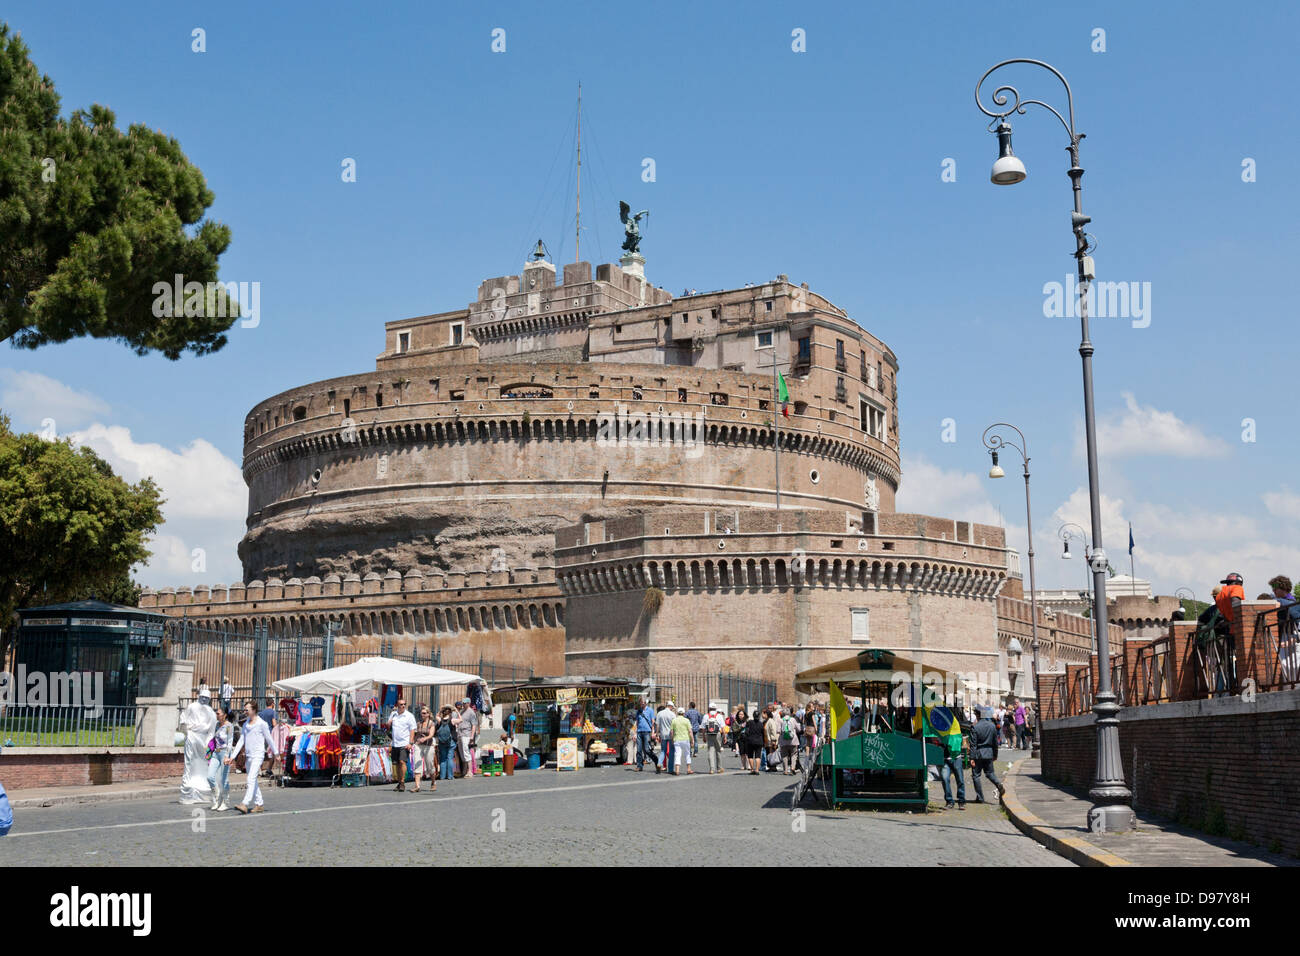 The Mausoleum of Hadrian, usually known as Castel Sant'Angelo - Stock Image